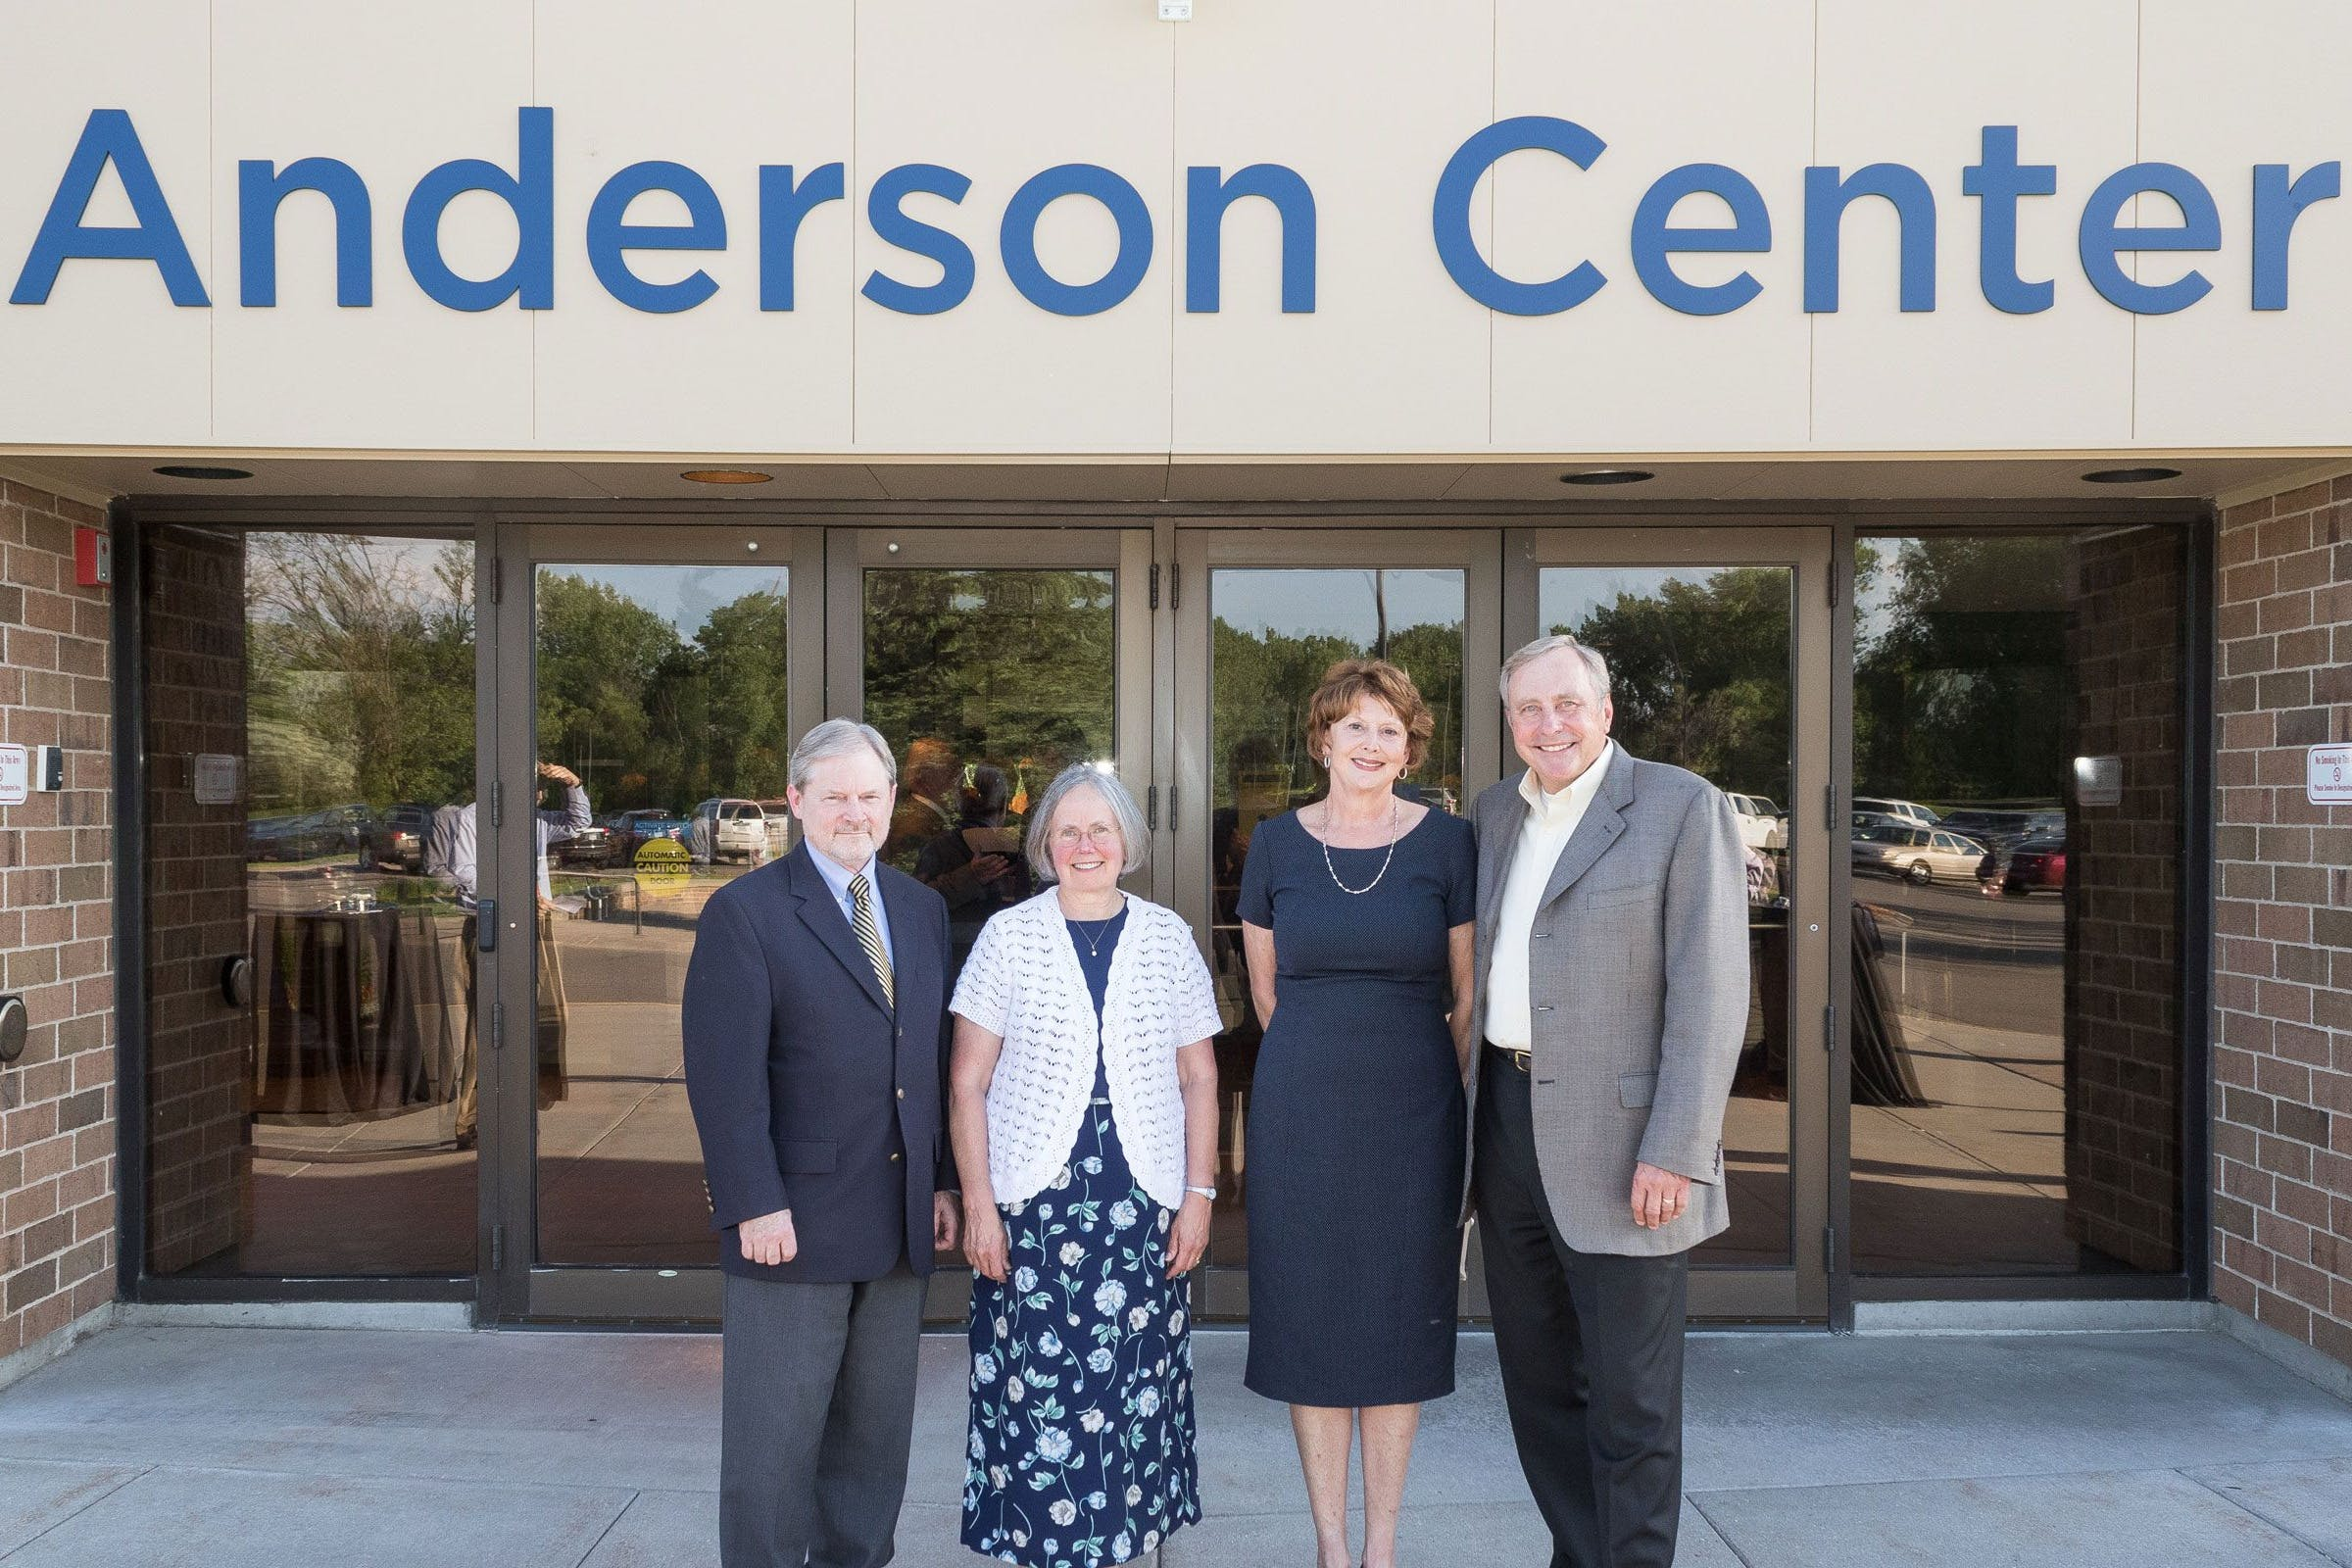 Anderson Center Celebration